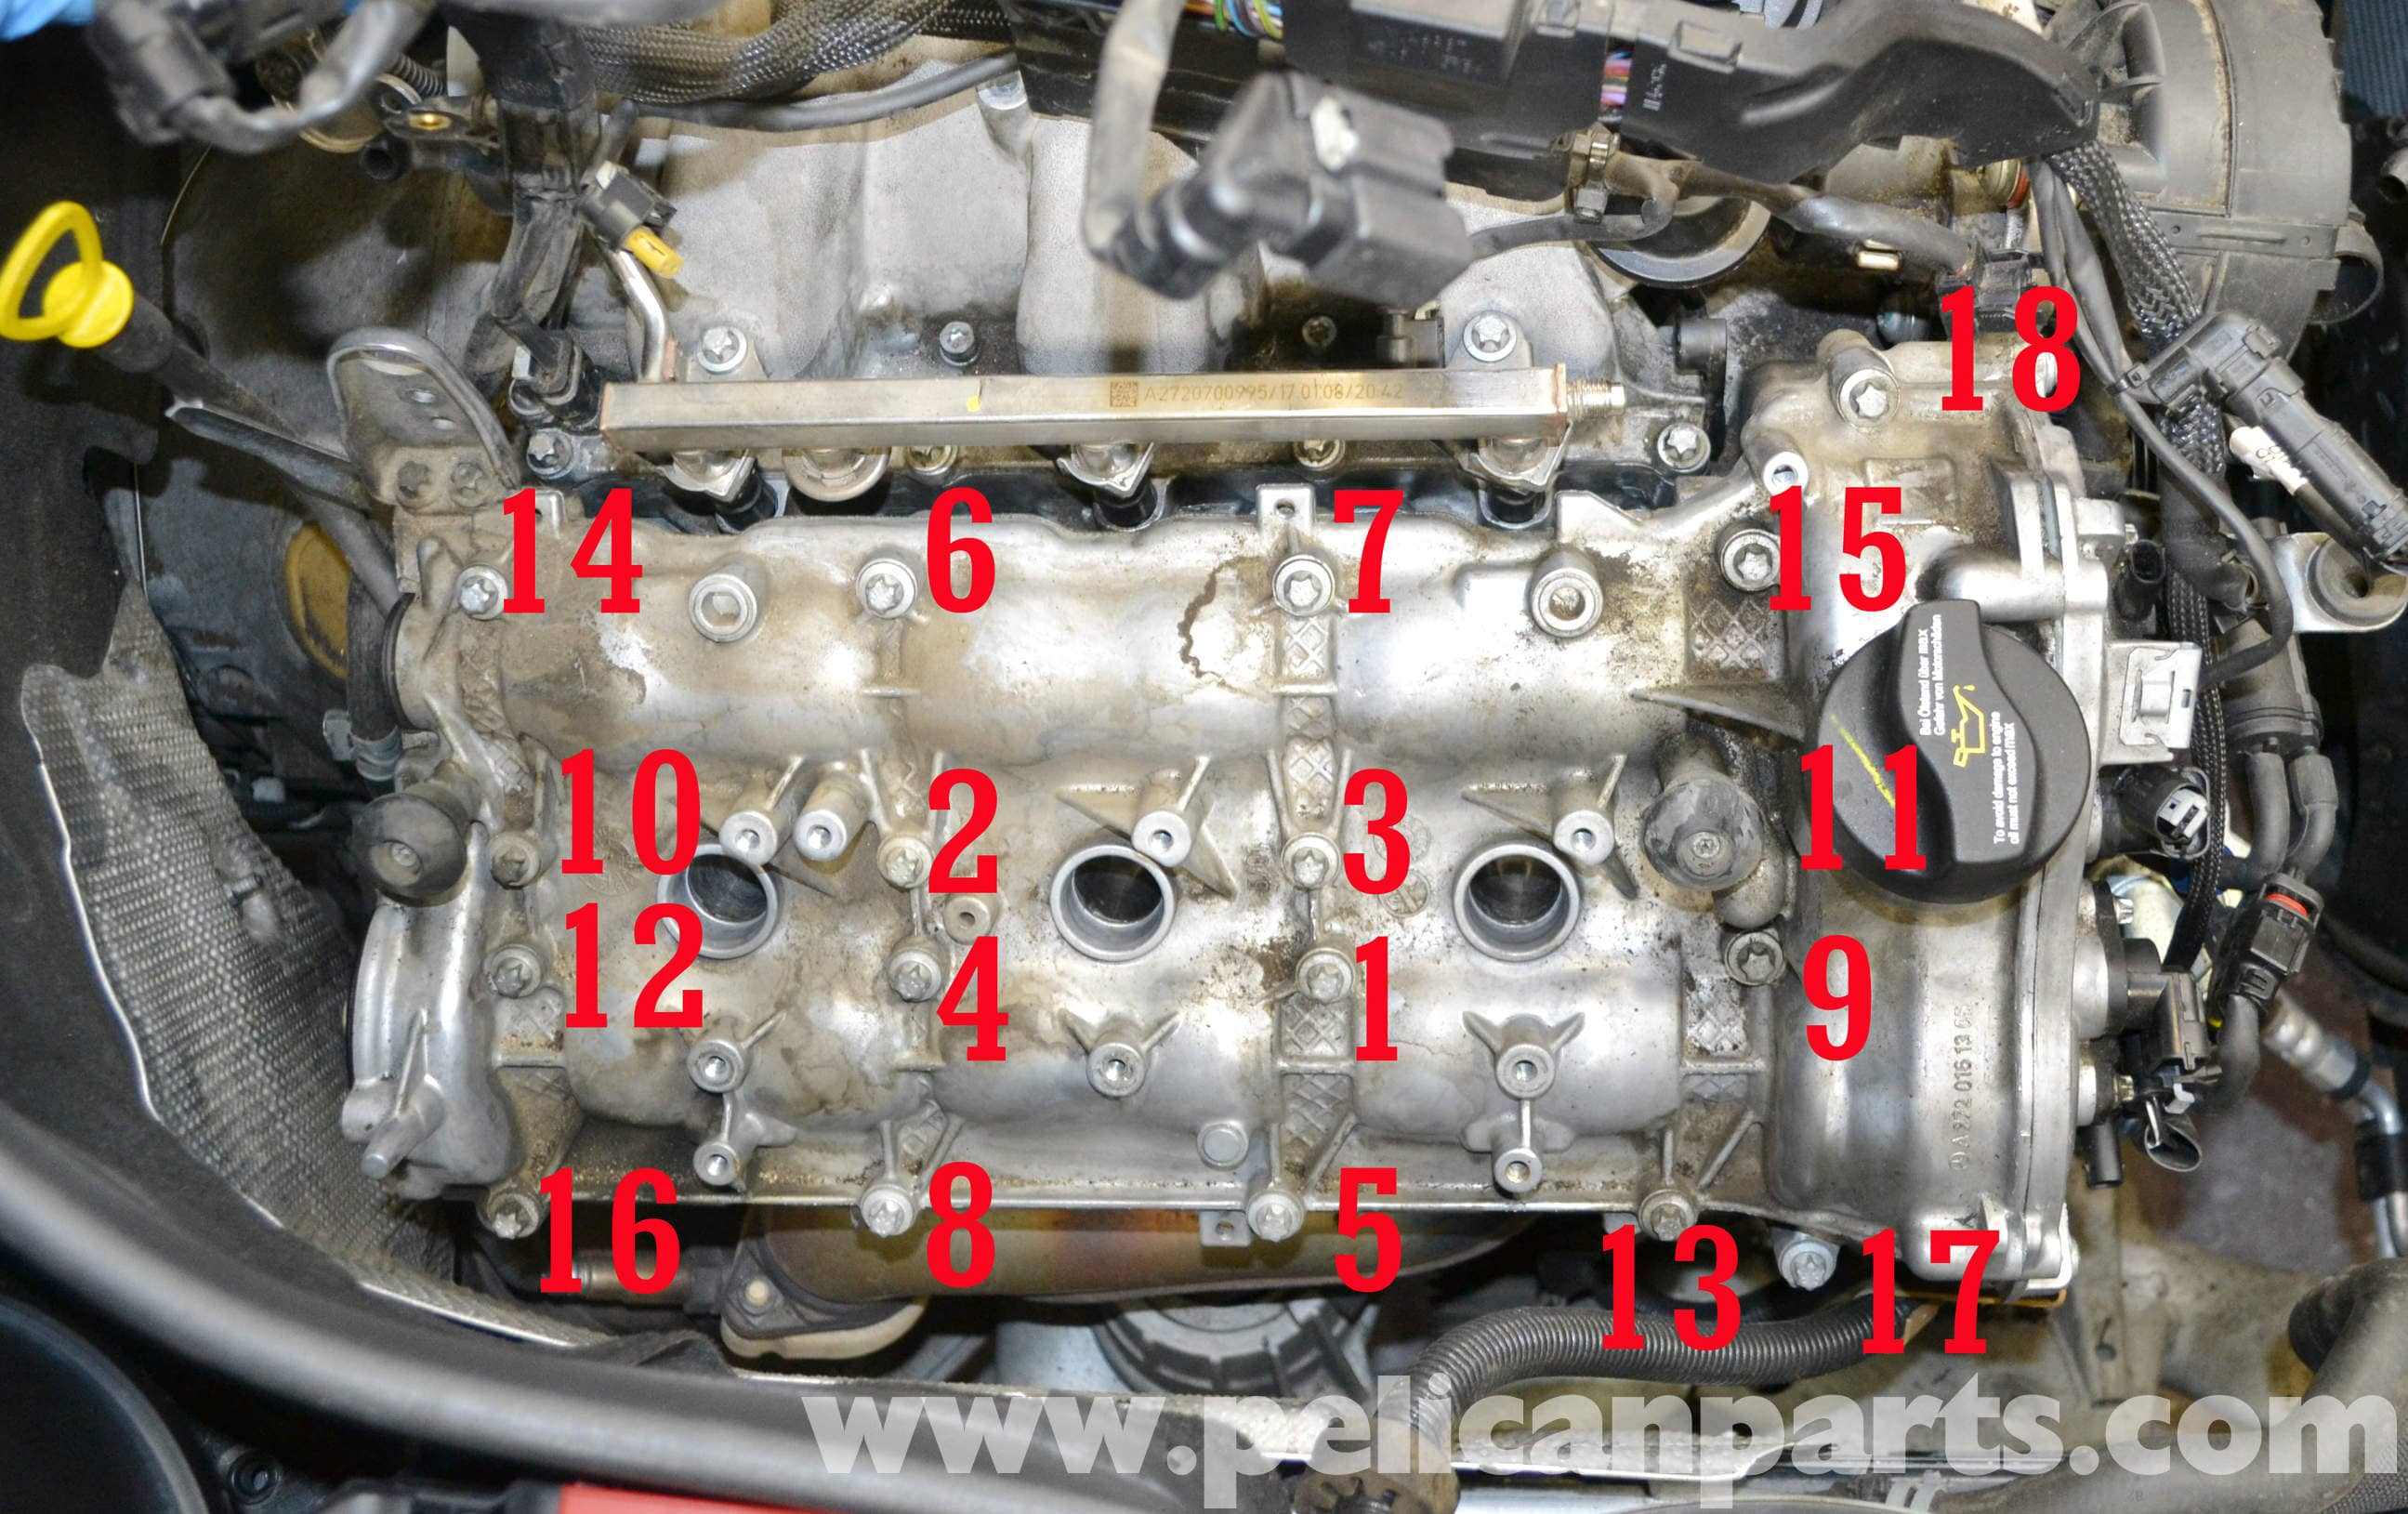 pic12 mercedes benz w204 valve cover removal (2008 2014) c250, c300  at crackthecode.co